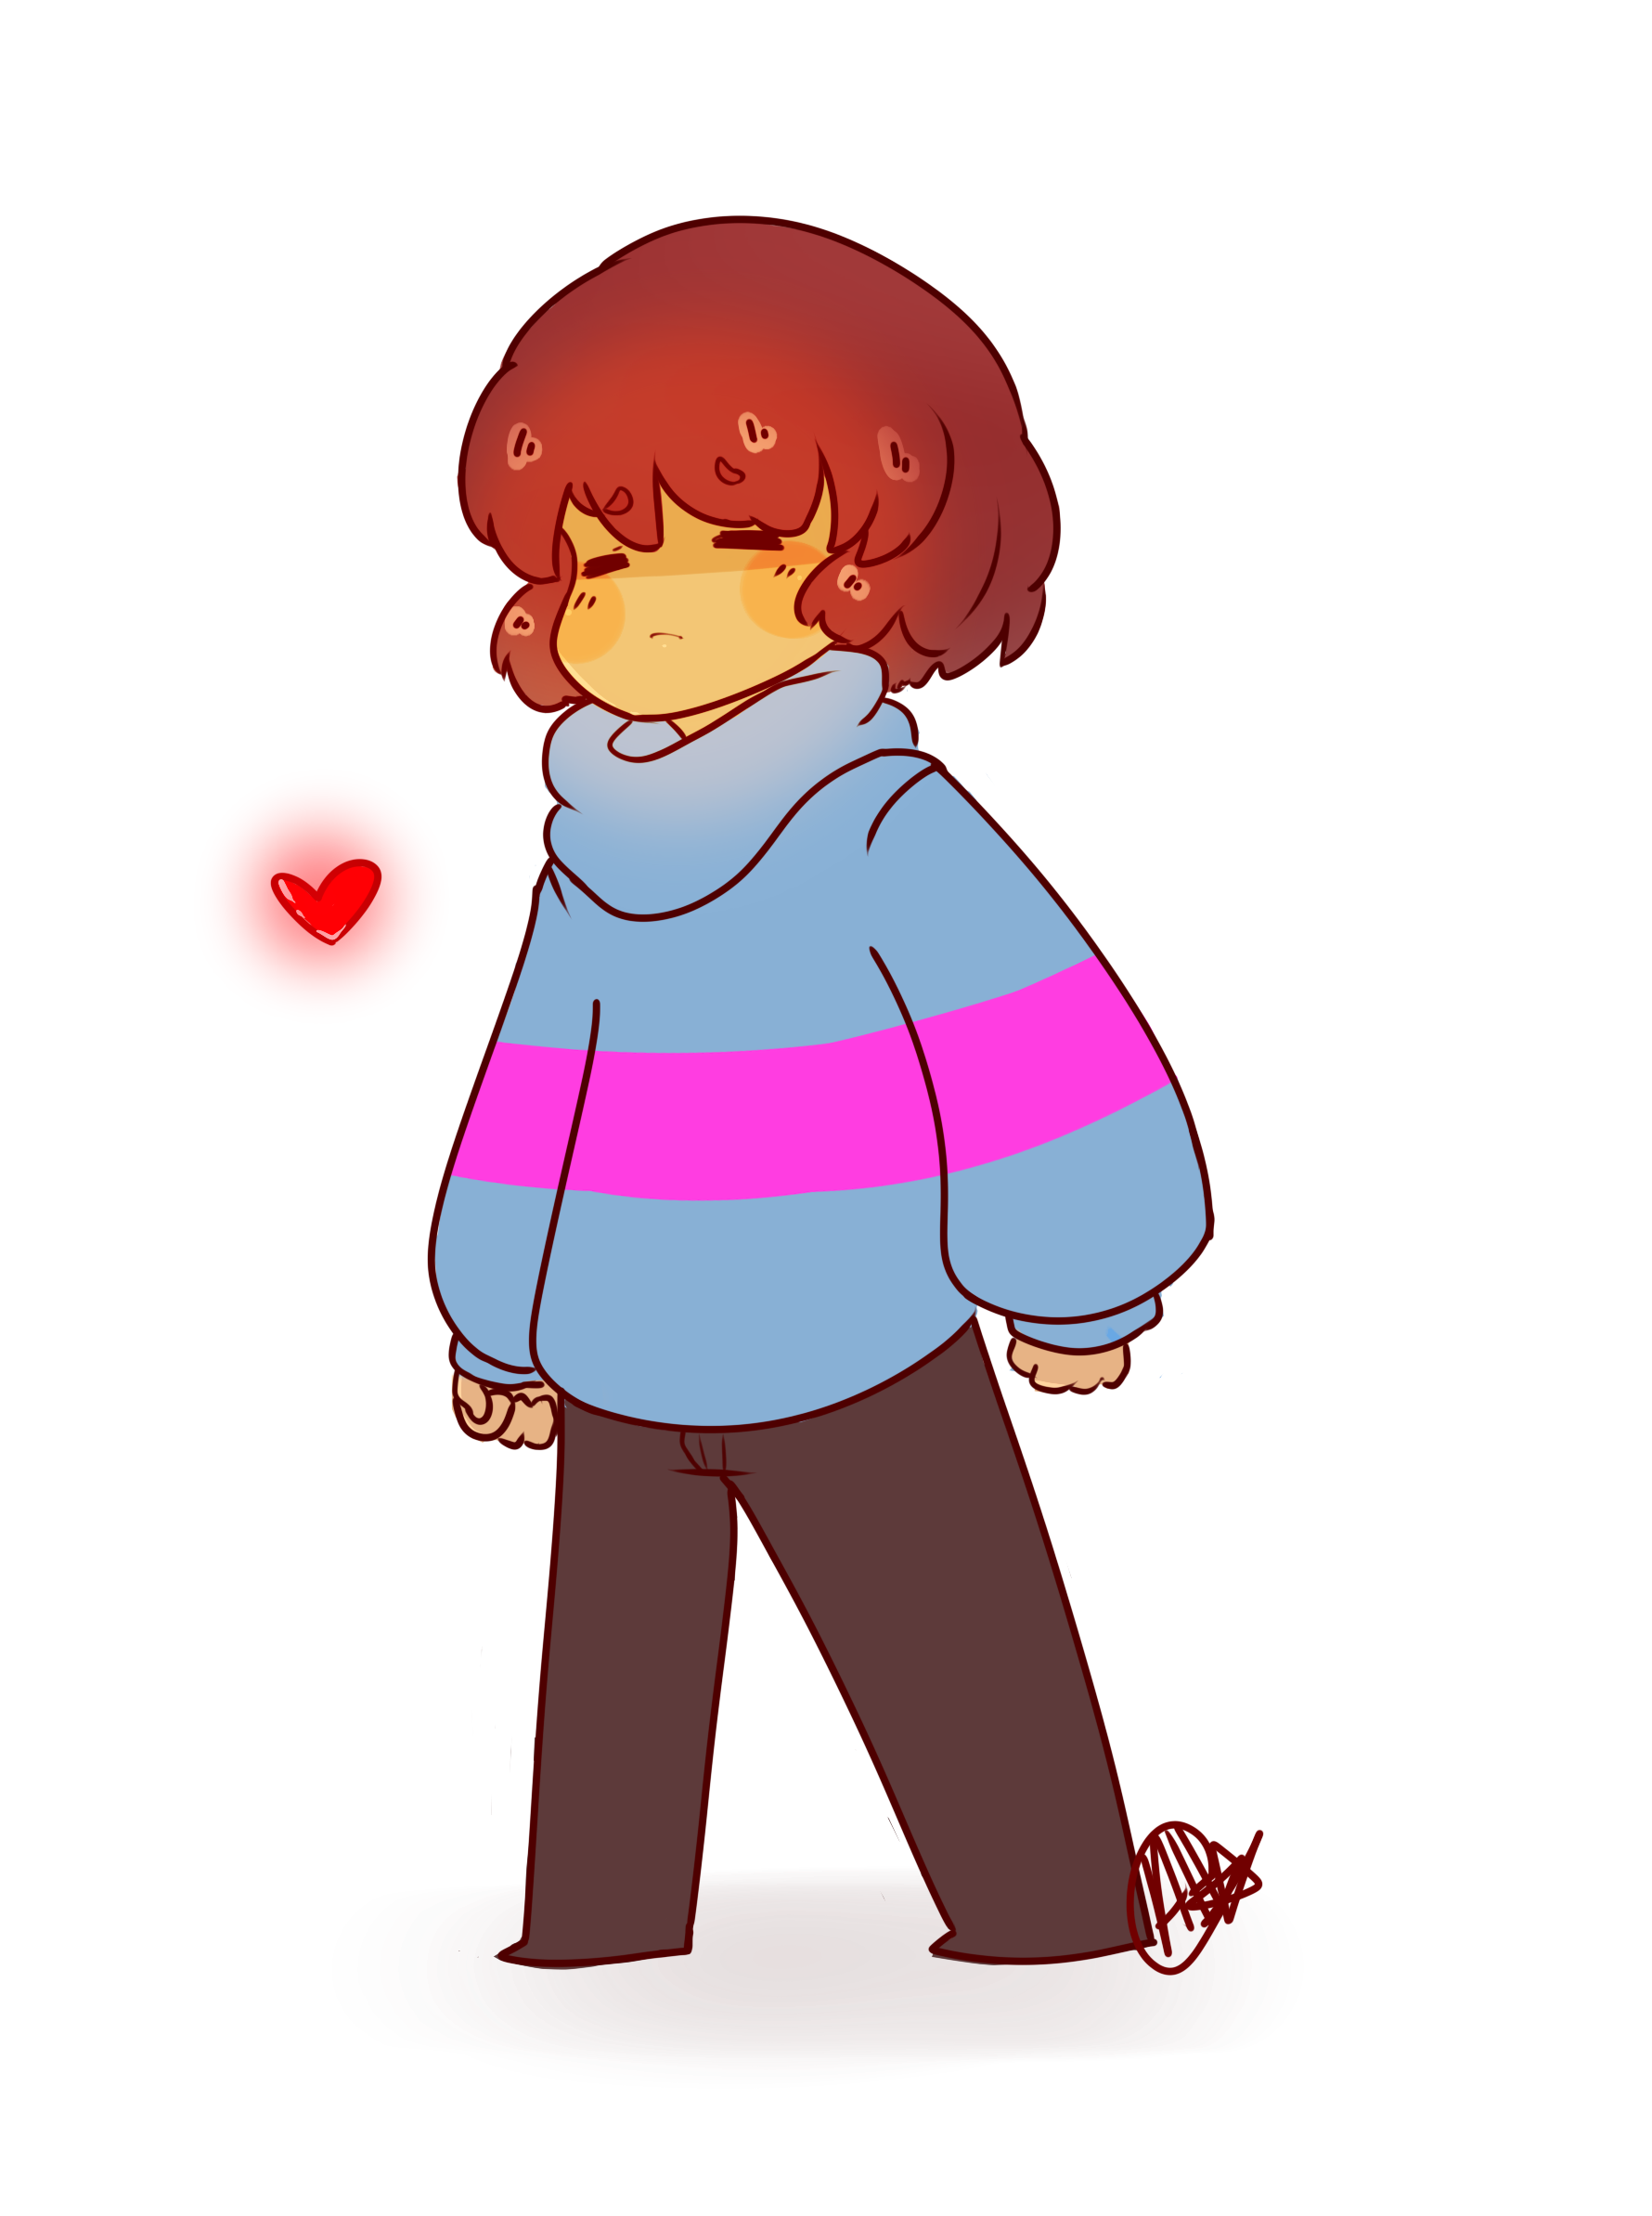 Undertale Fanart- Frisk by SilverKnight27 on DeviantArt